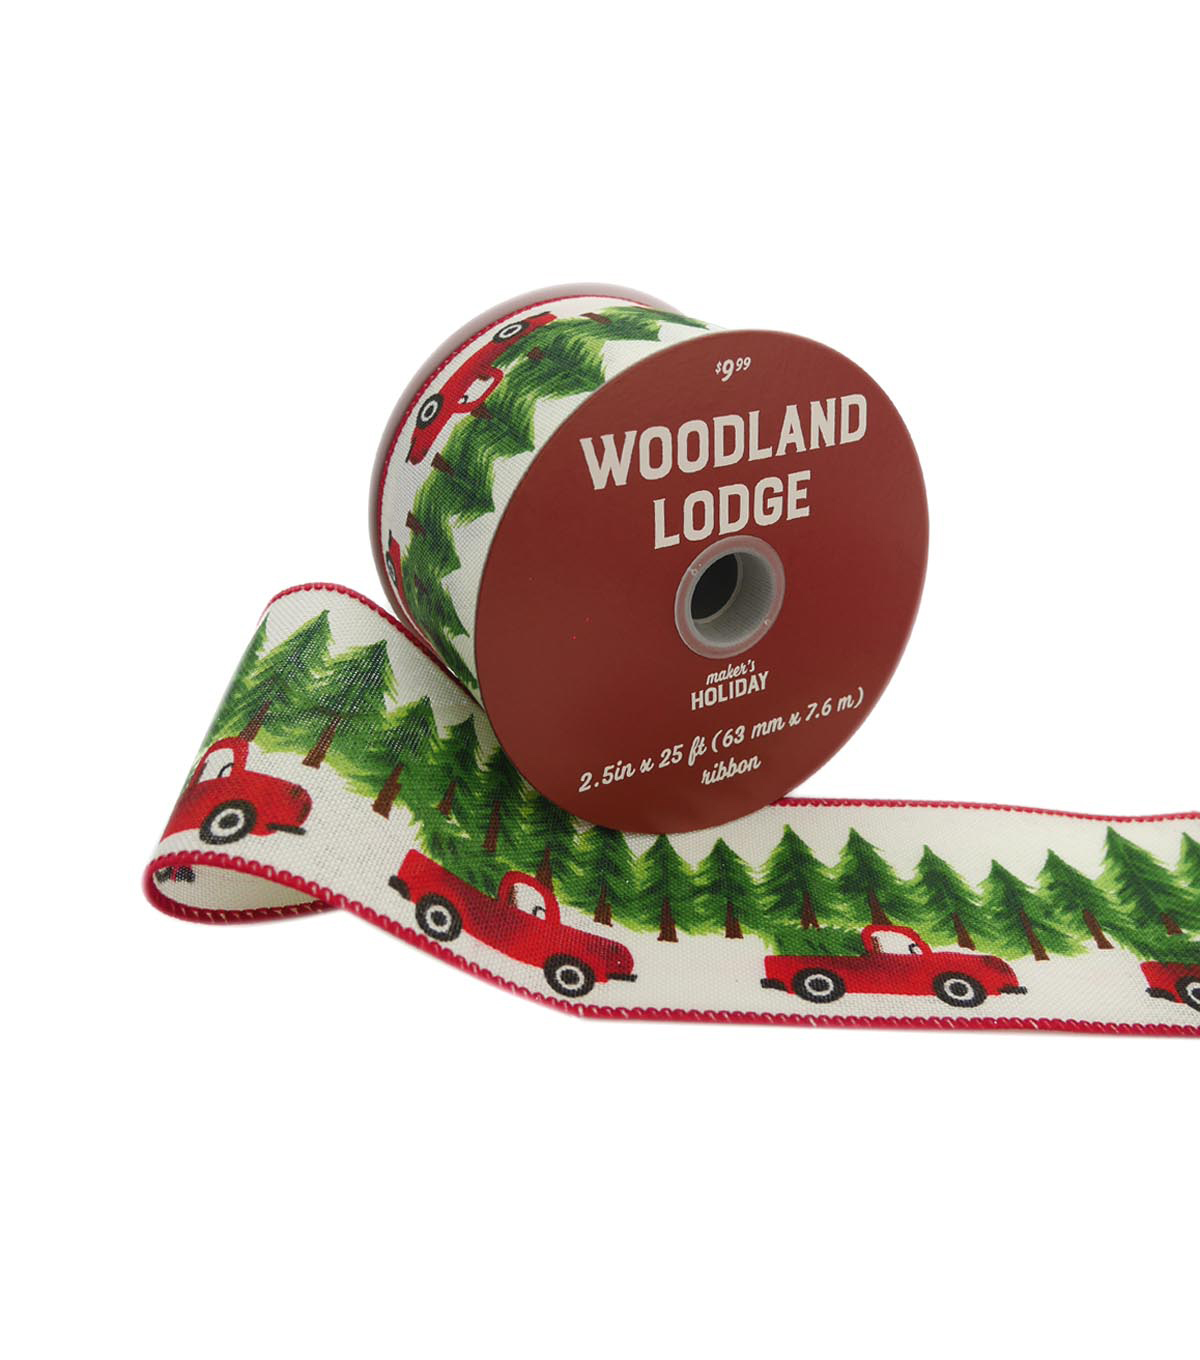 Maker\u0027s Holiday Woodland Lodge Ribbon 2.5\u0027\u0027x25\u0027-Trucks with Trees